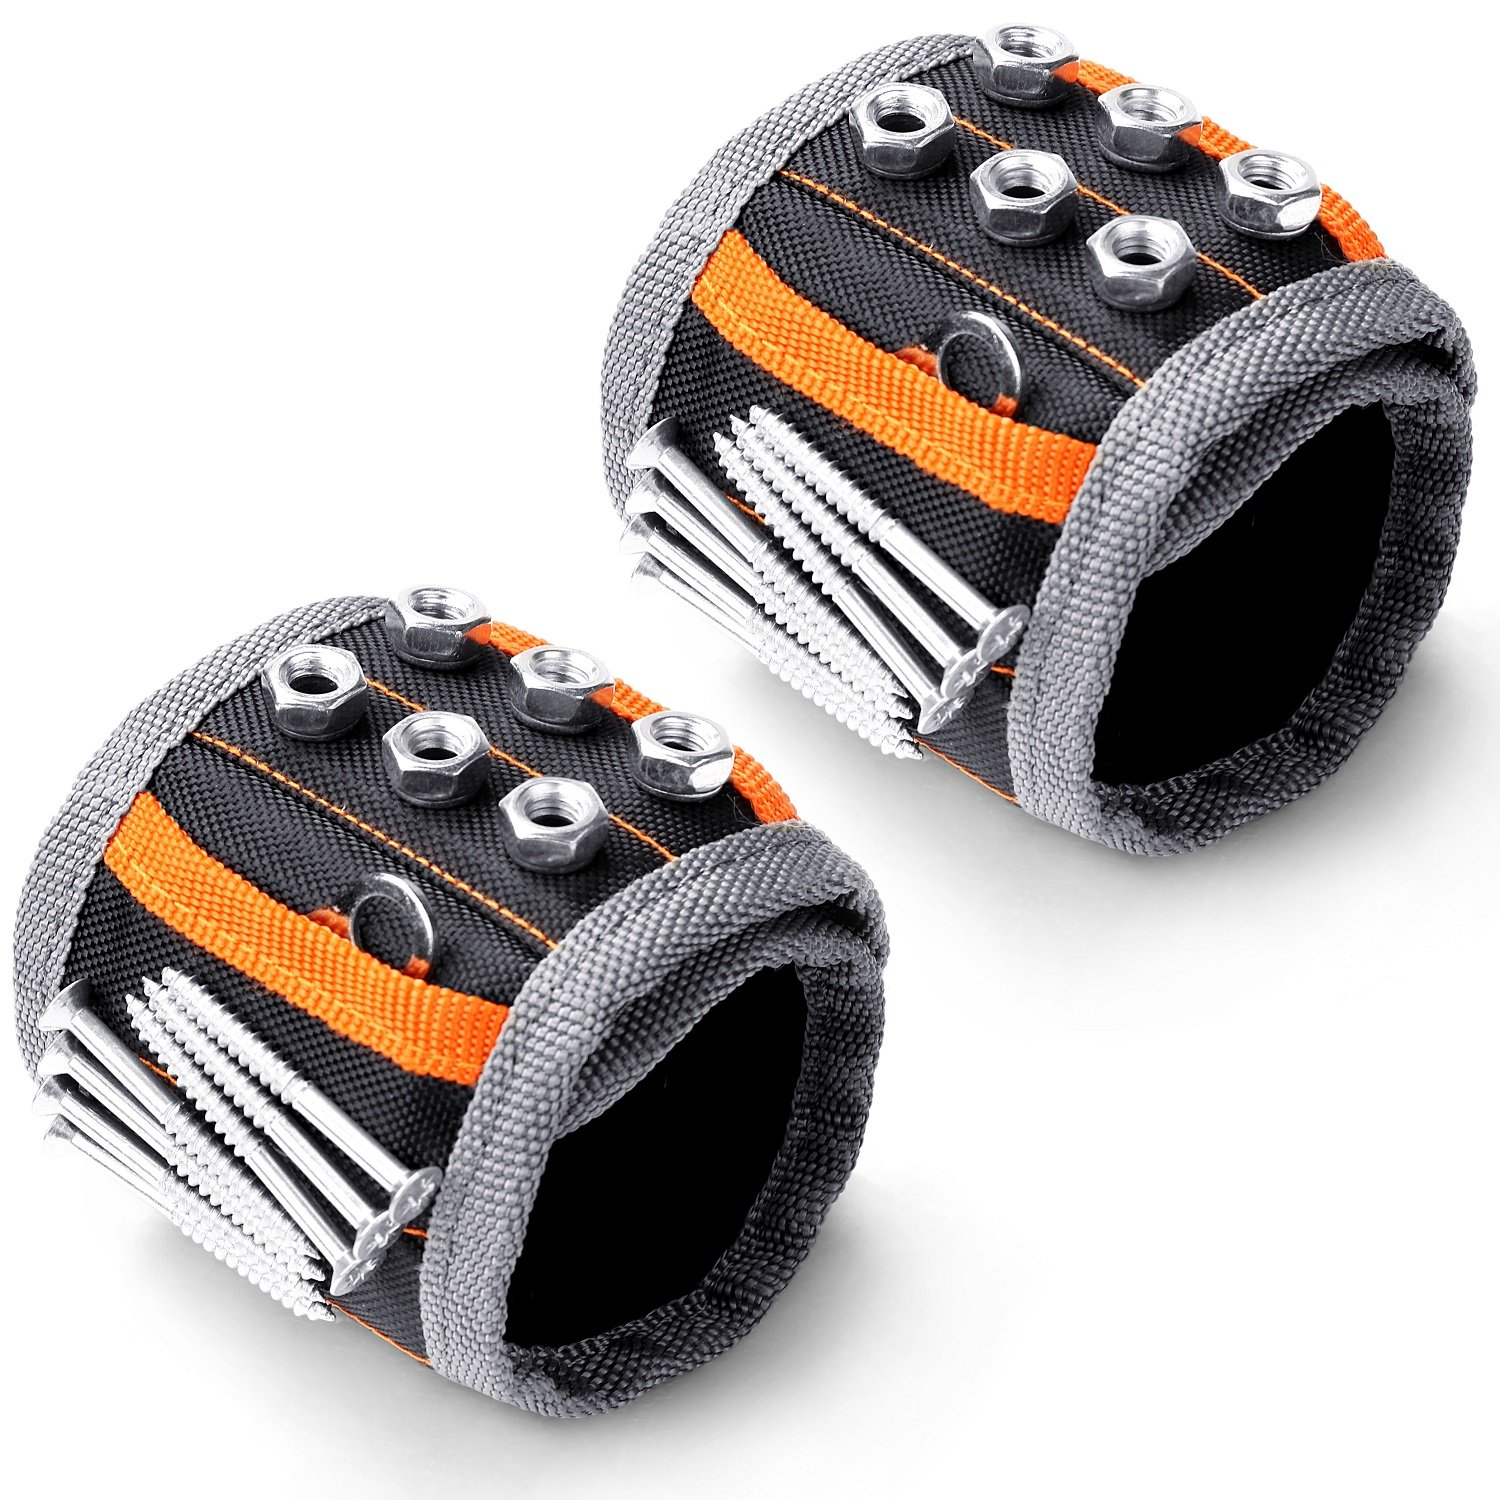 HORUSDY Magnetic Wristband ,with Strong Magnets for Holding Screws, Nails, Drilling Bits, of The Best Valentine's Day Tools for Men (ordinary)